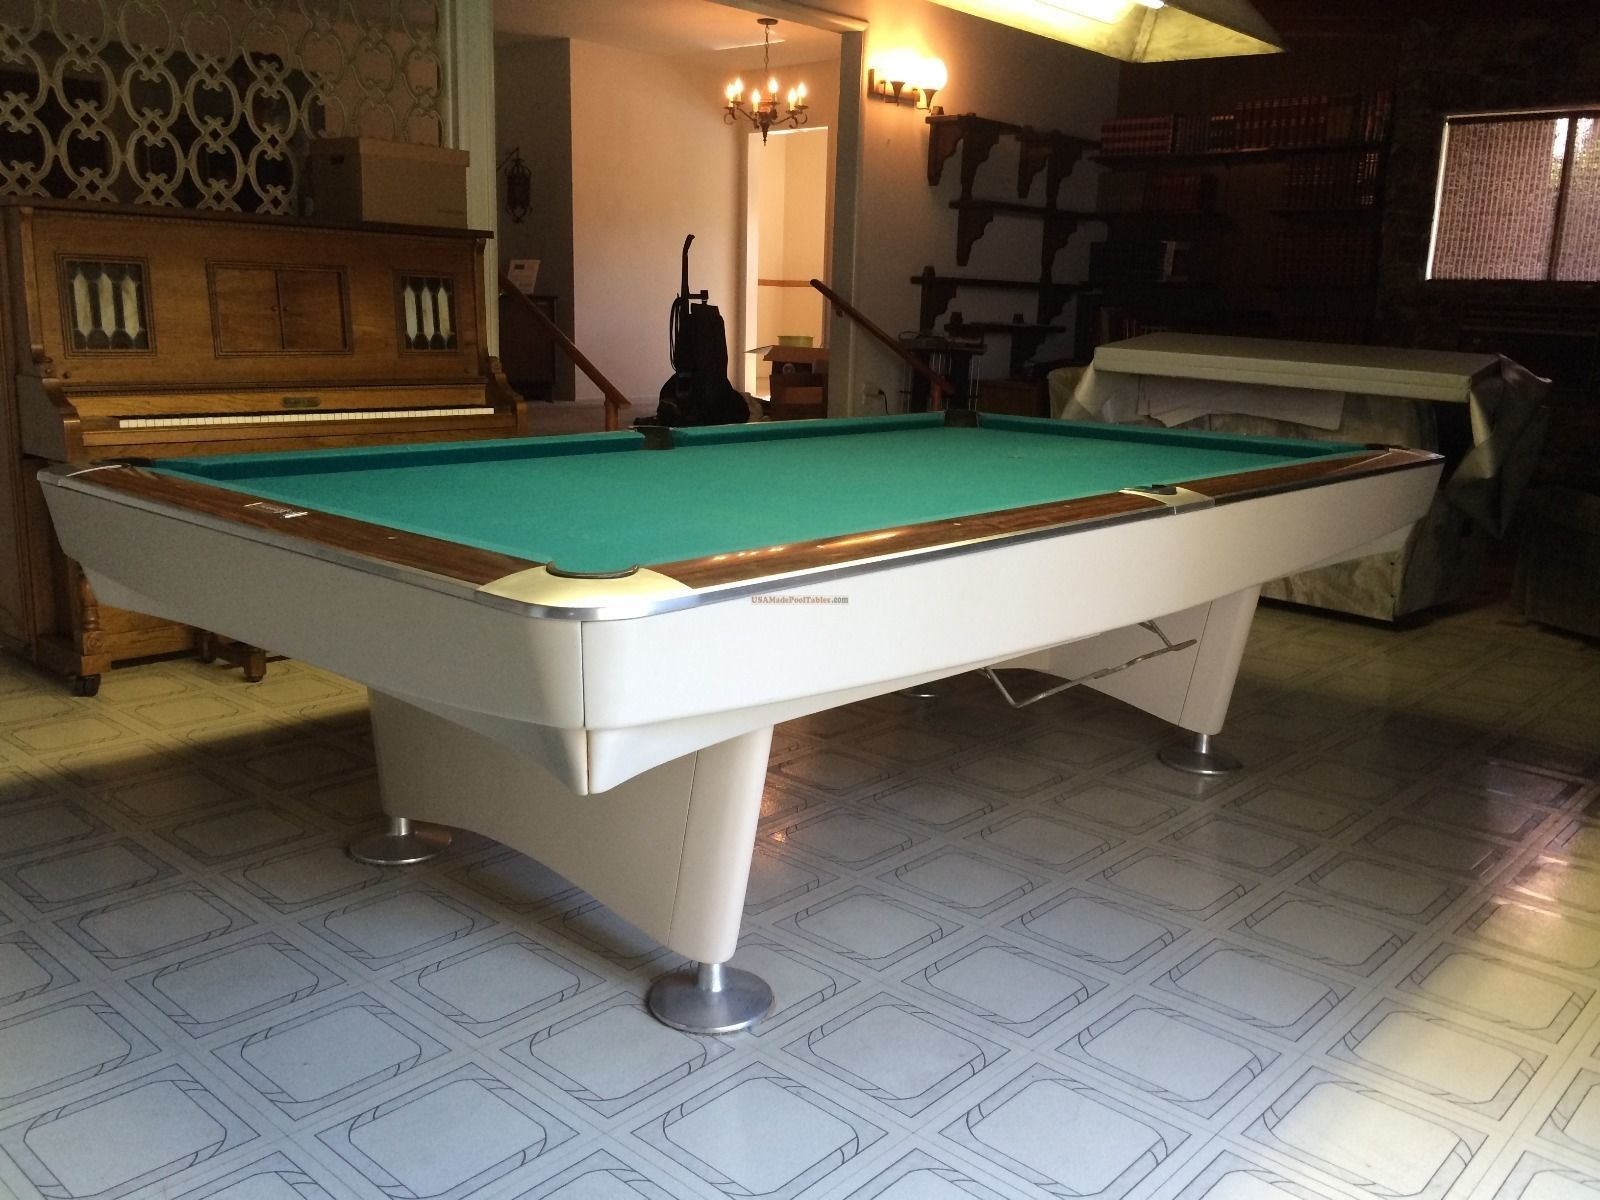 Ft Brunswick Gold Crown Pool Table EBay Billiards Pinterest - 9 ft brunswick pool table